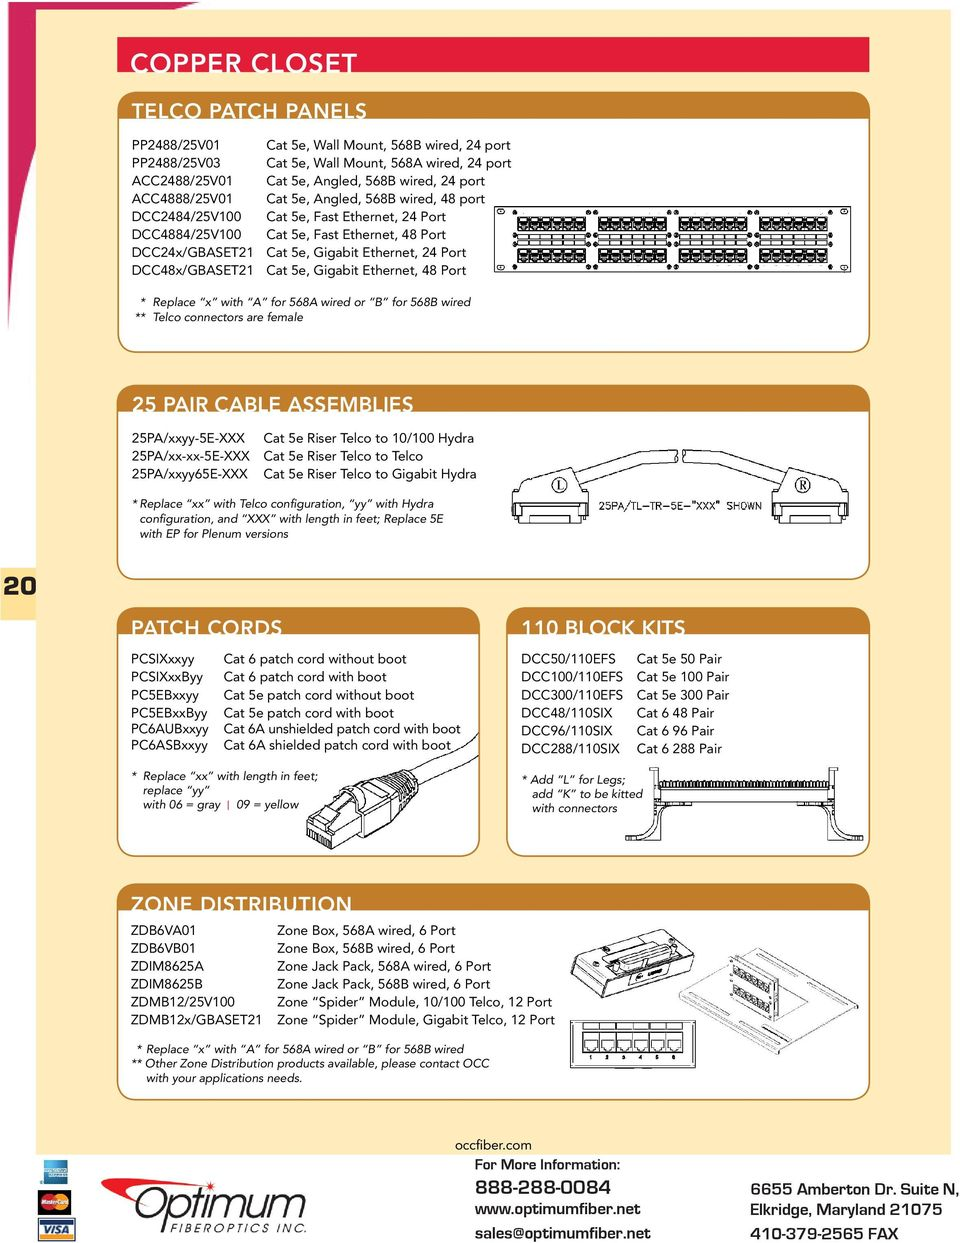 Cable Assembly Configuration Guide Pdf 5e 568a Wiring Diagram Dcc48x Gbaset21 Cat Gigabit Ethernet 48 Port Replace X With A